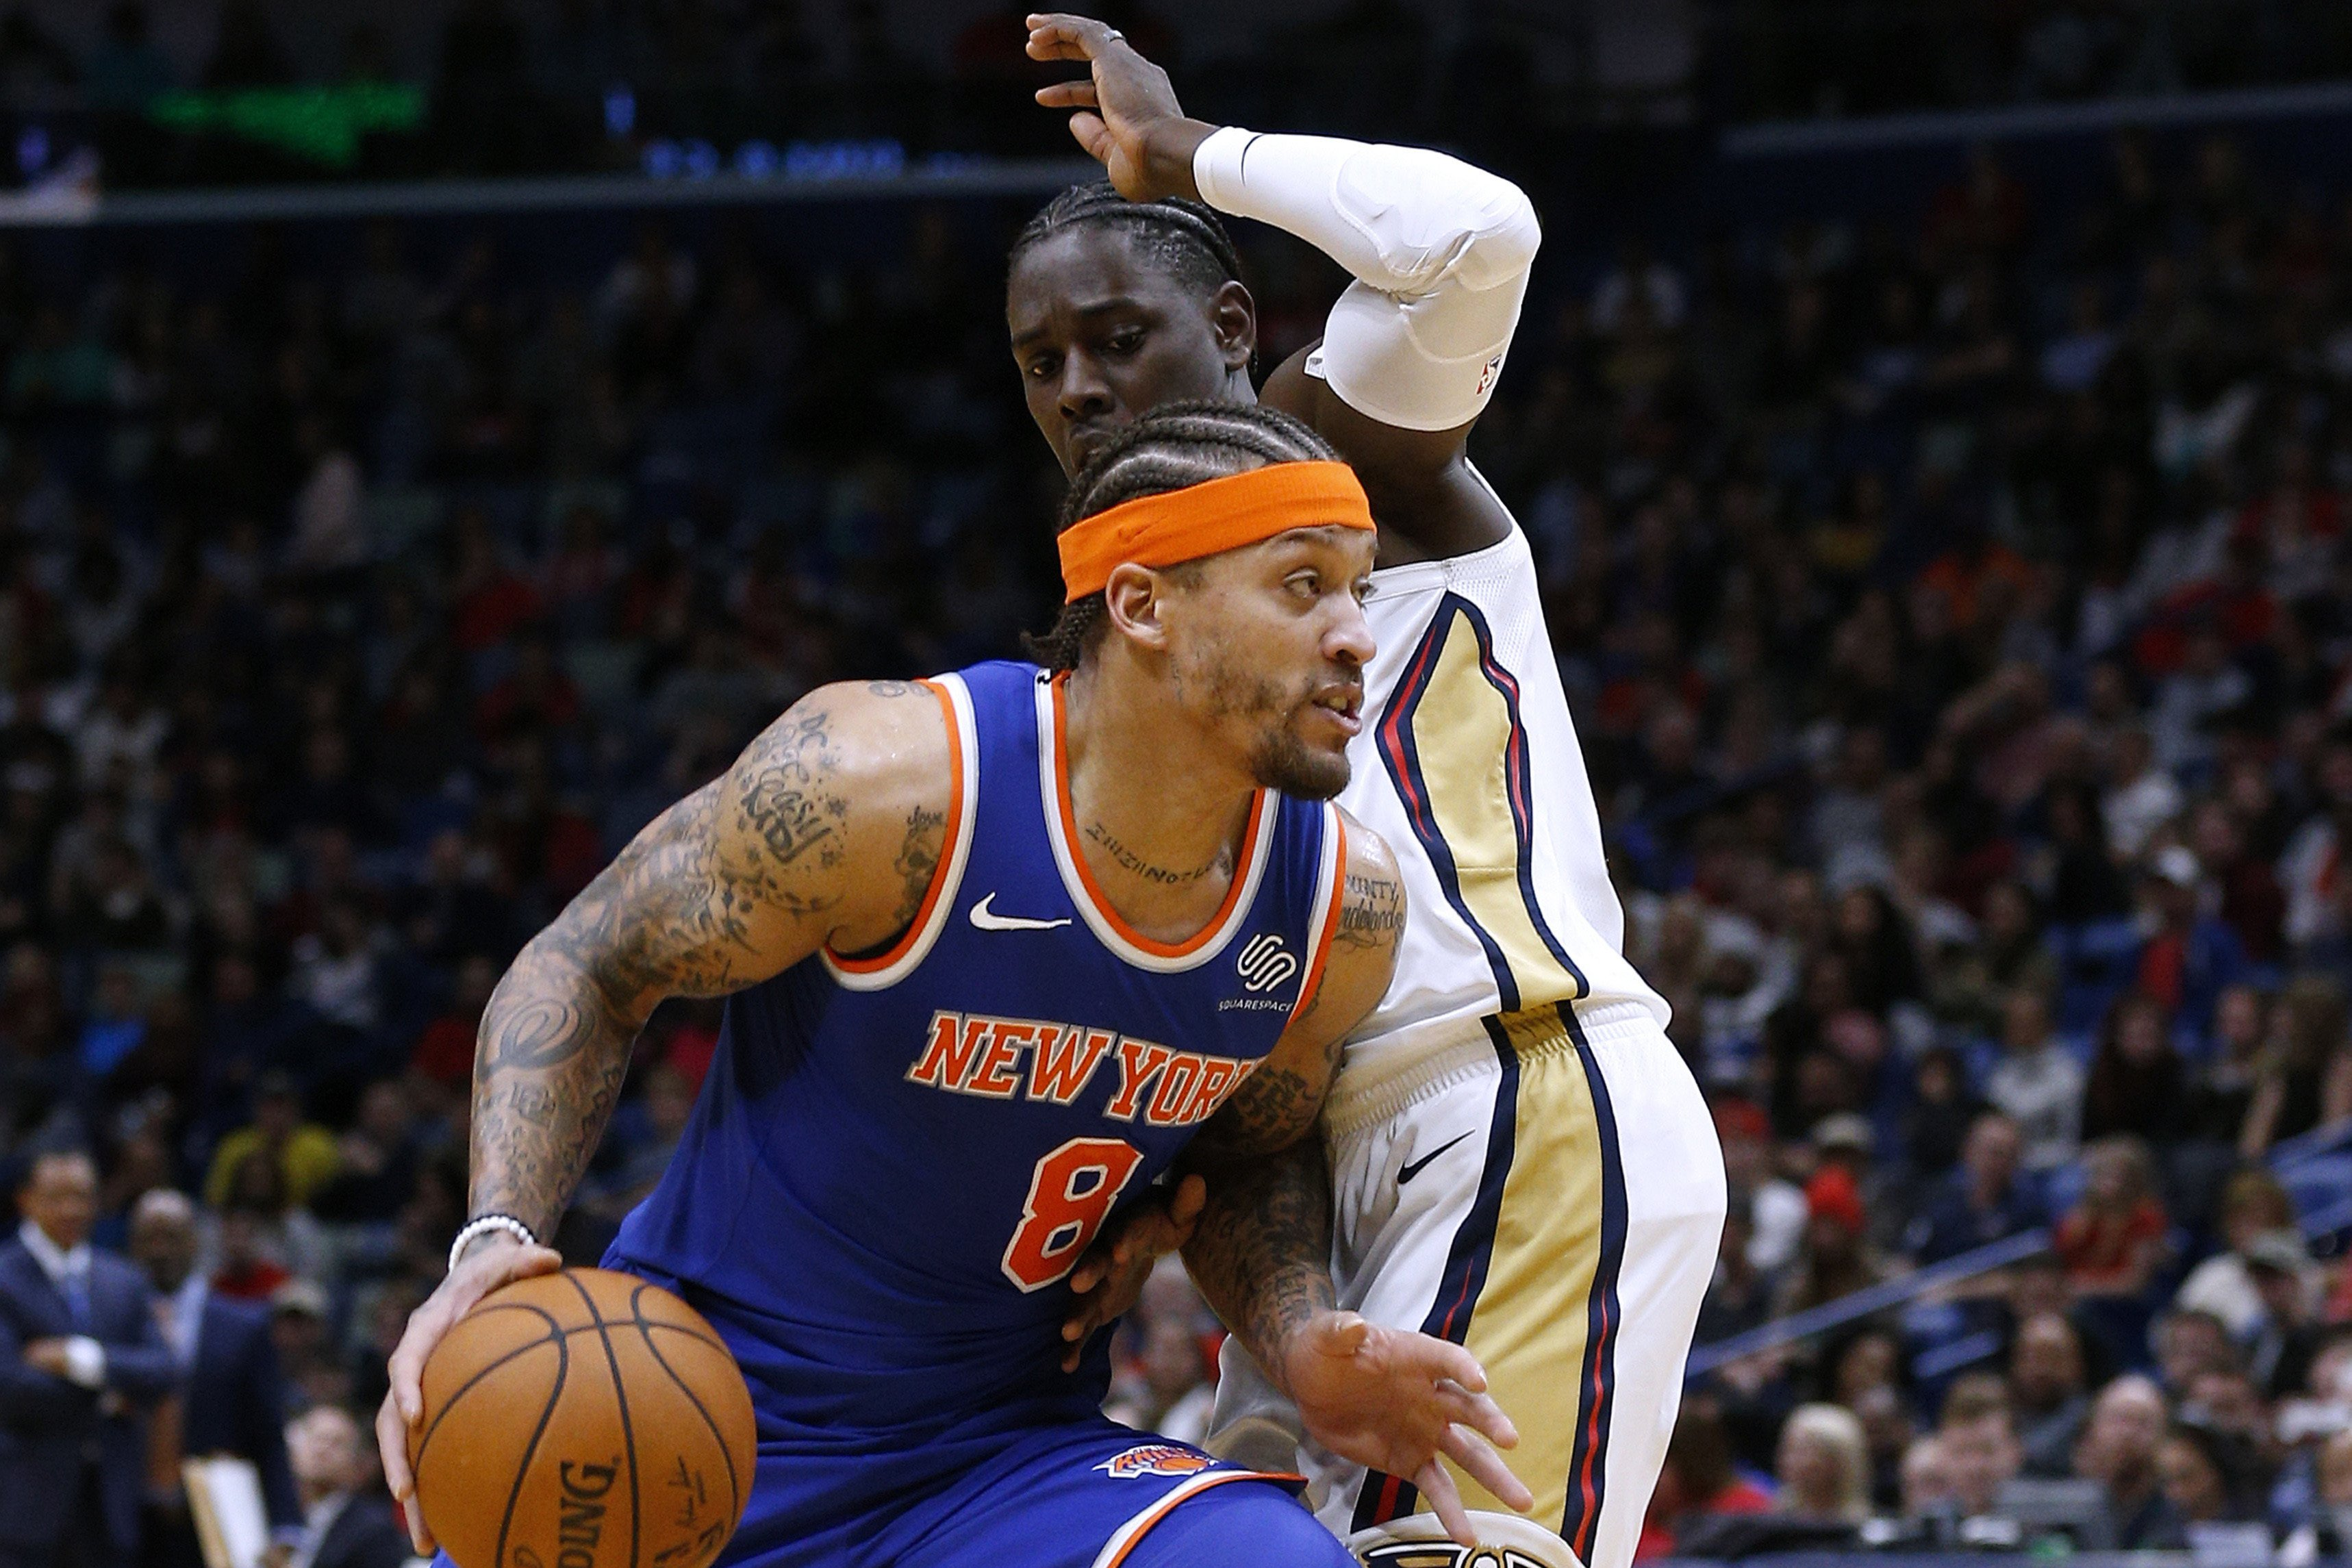 Michael Beasley's fate is sealed, and he knows it